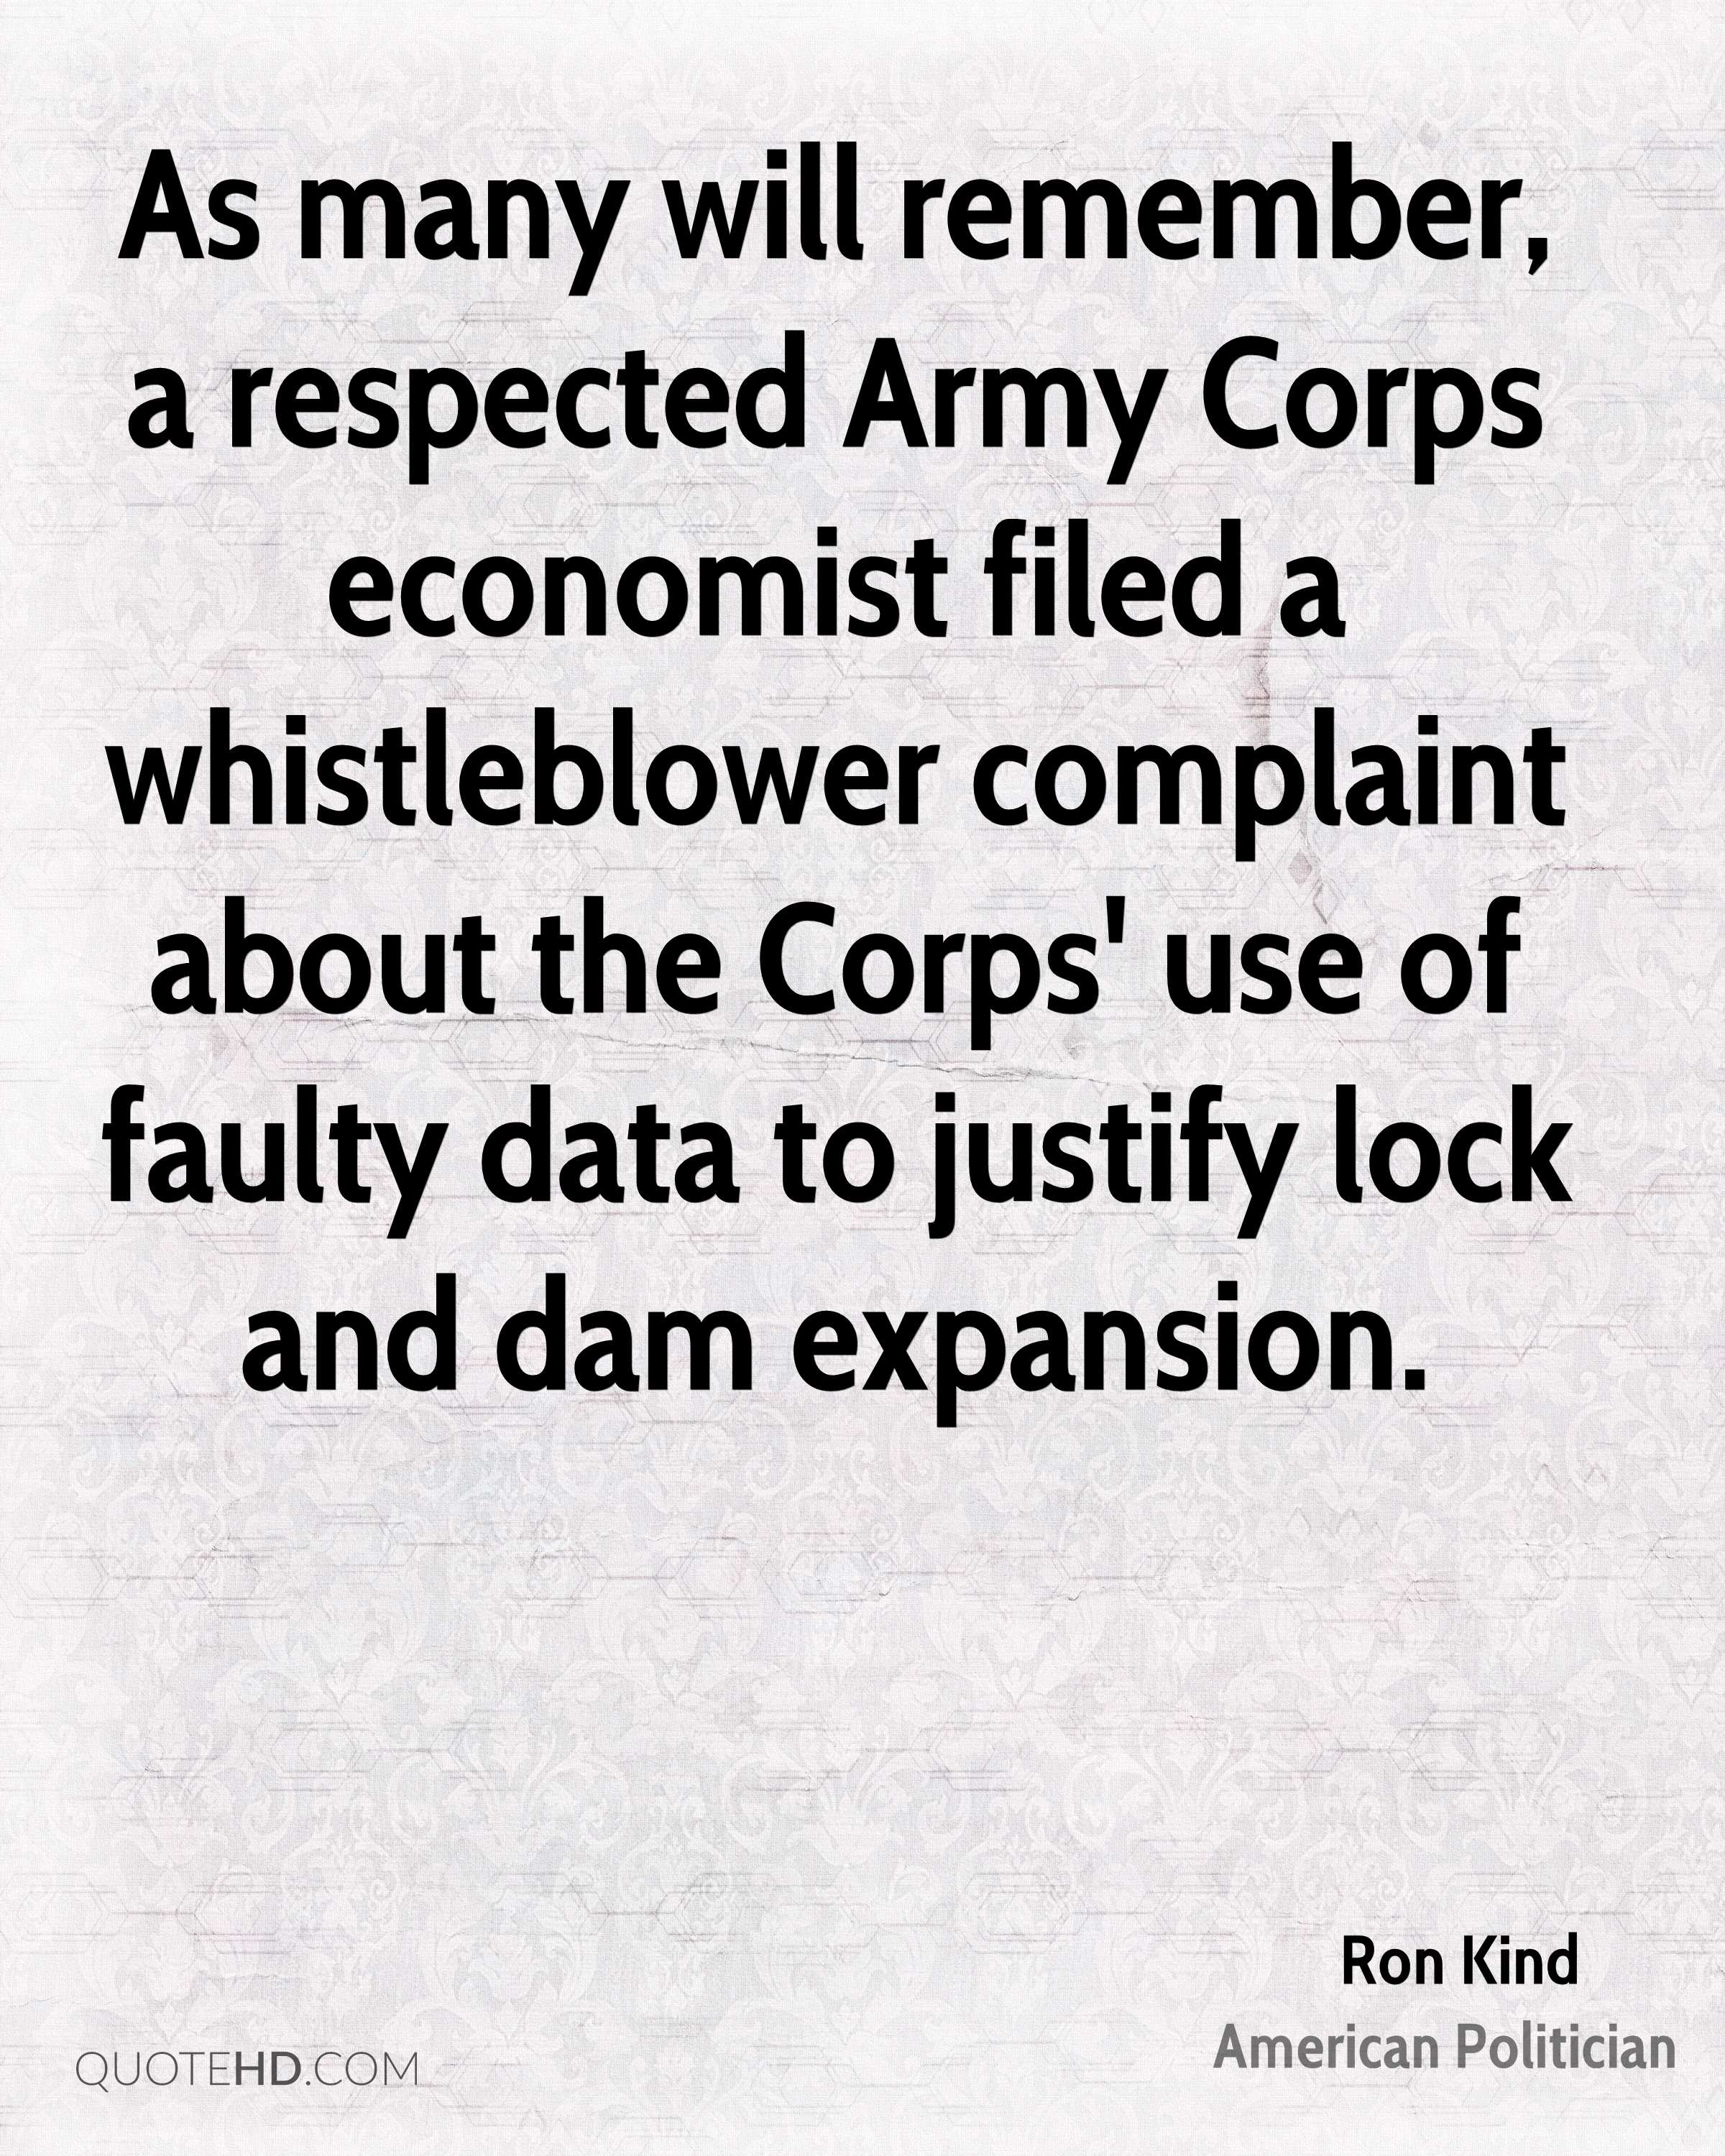 As many will remember, a respected Army Corps economist filed a whistleblower complaint about the Corps' use of faulty data to justify lock and dam expansion.